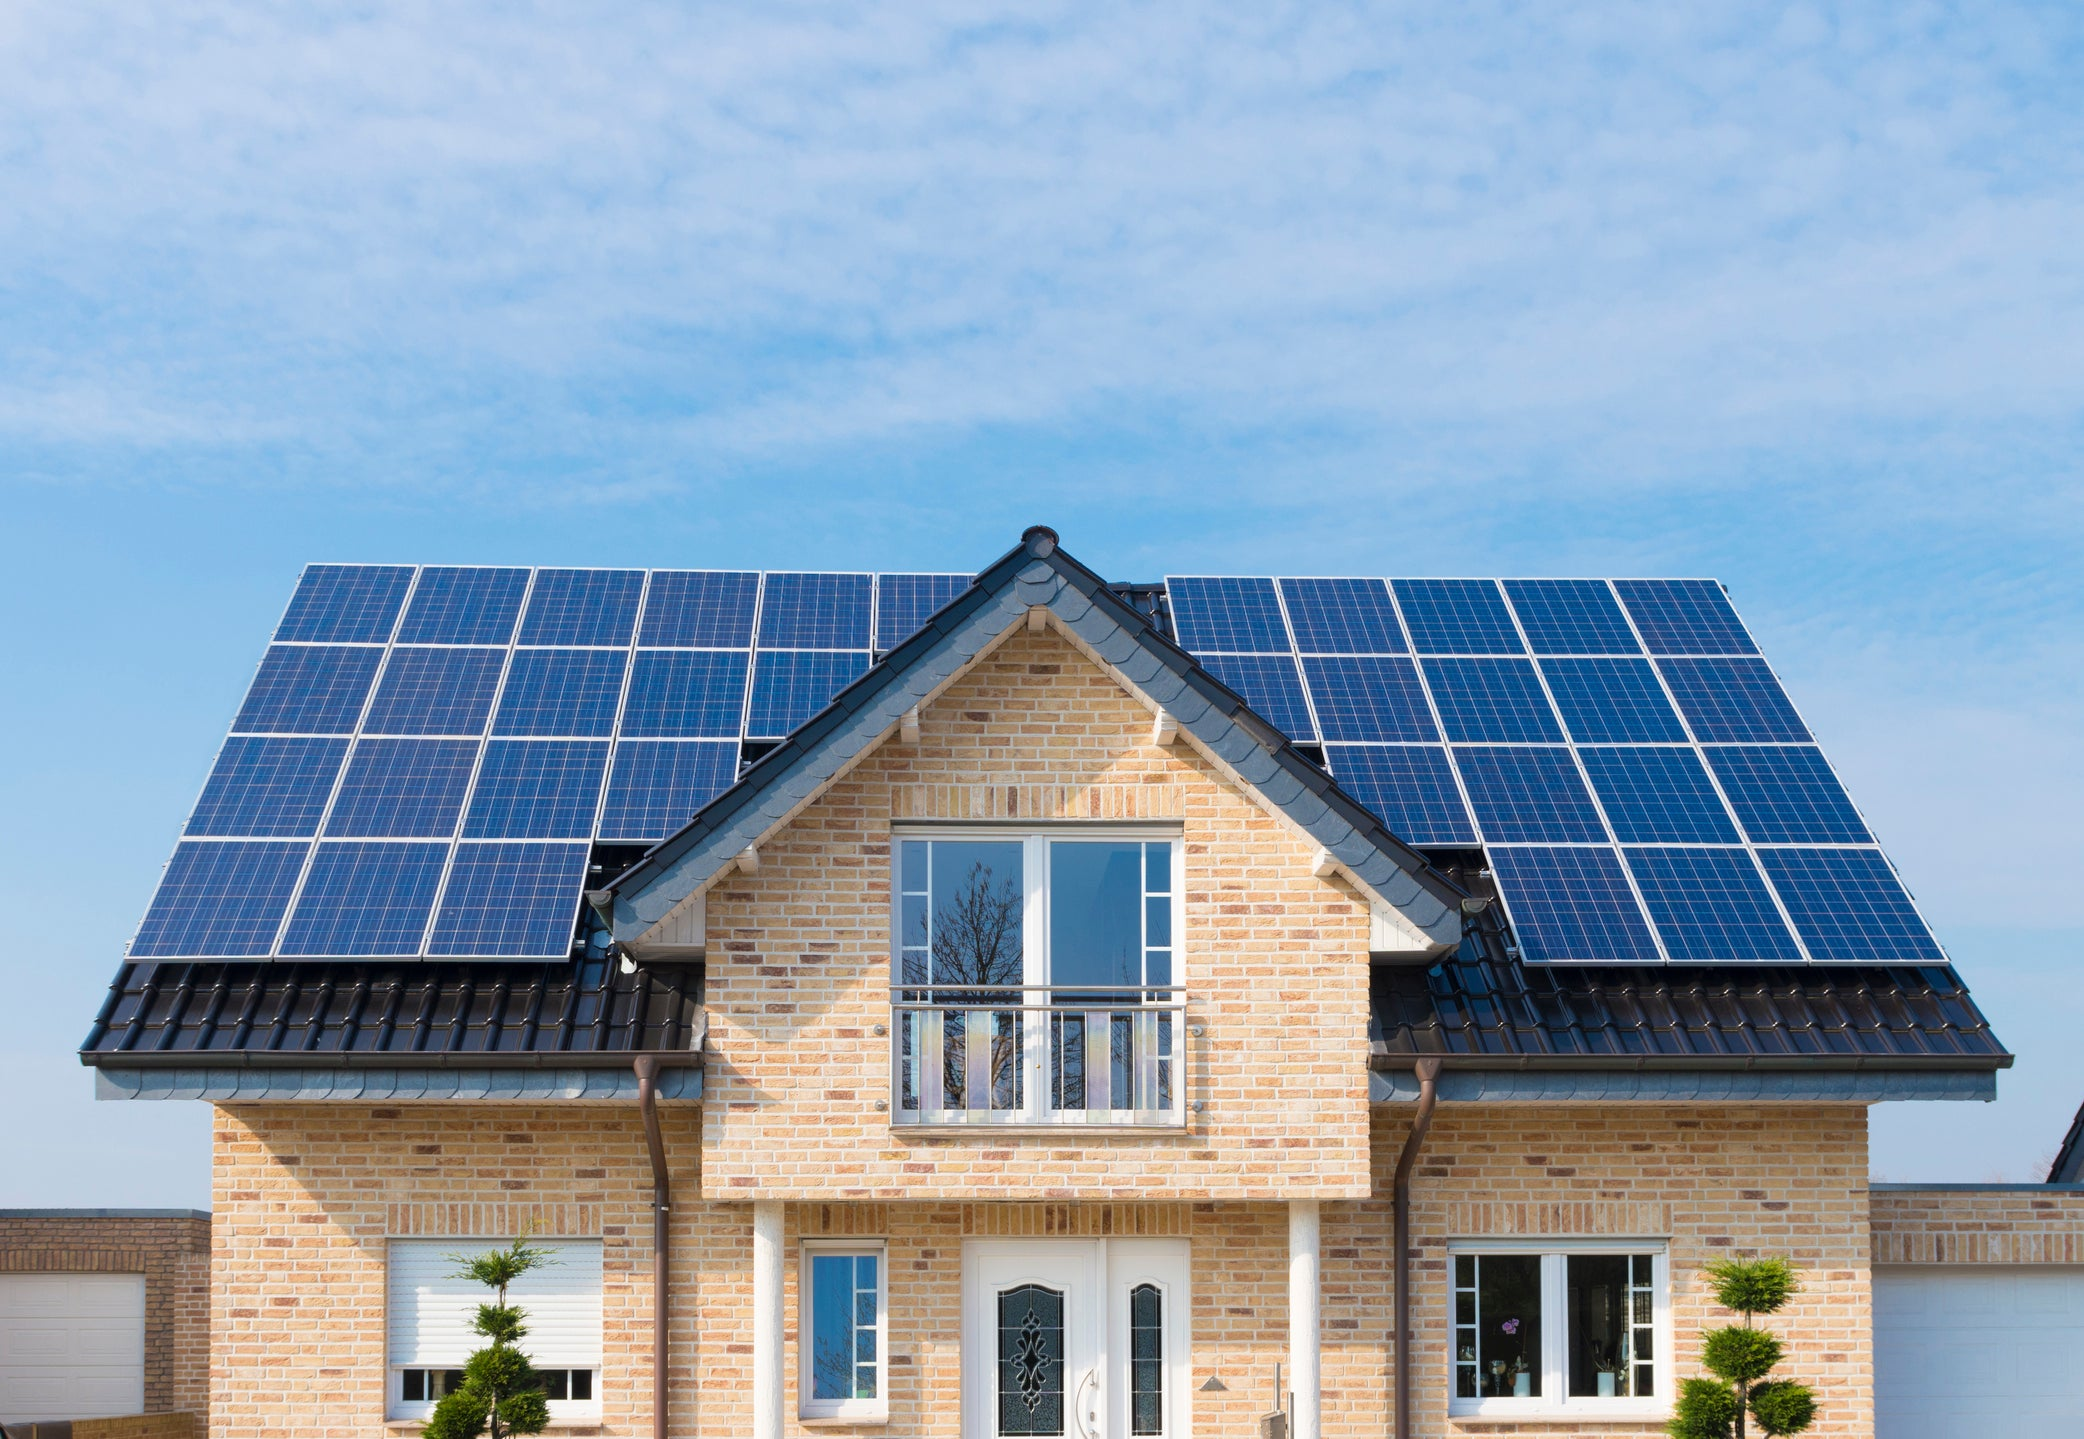 Tesla's SolarCity Buyout Looking Worse By the Day